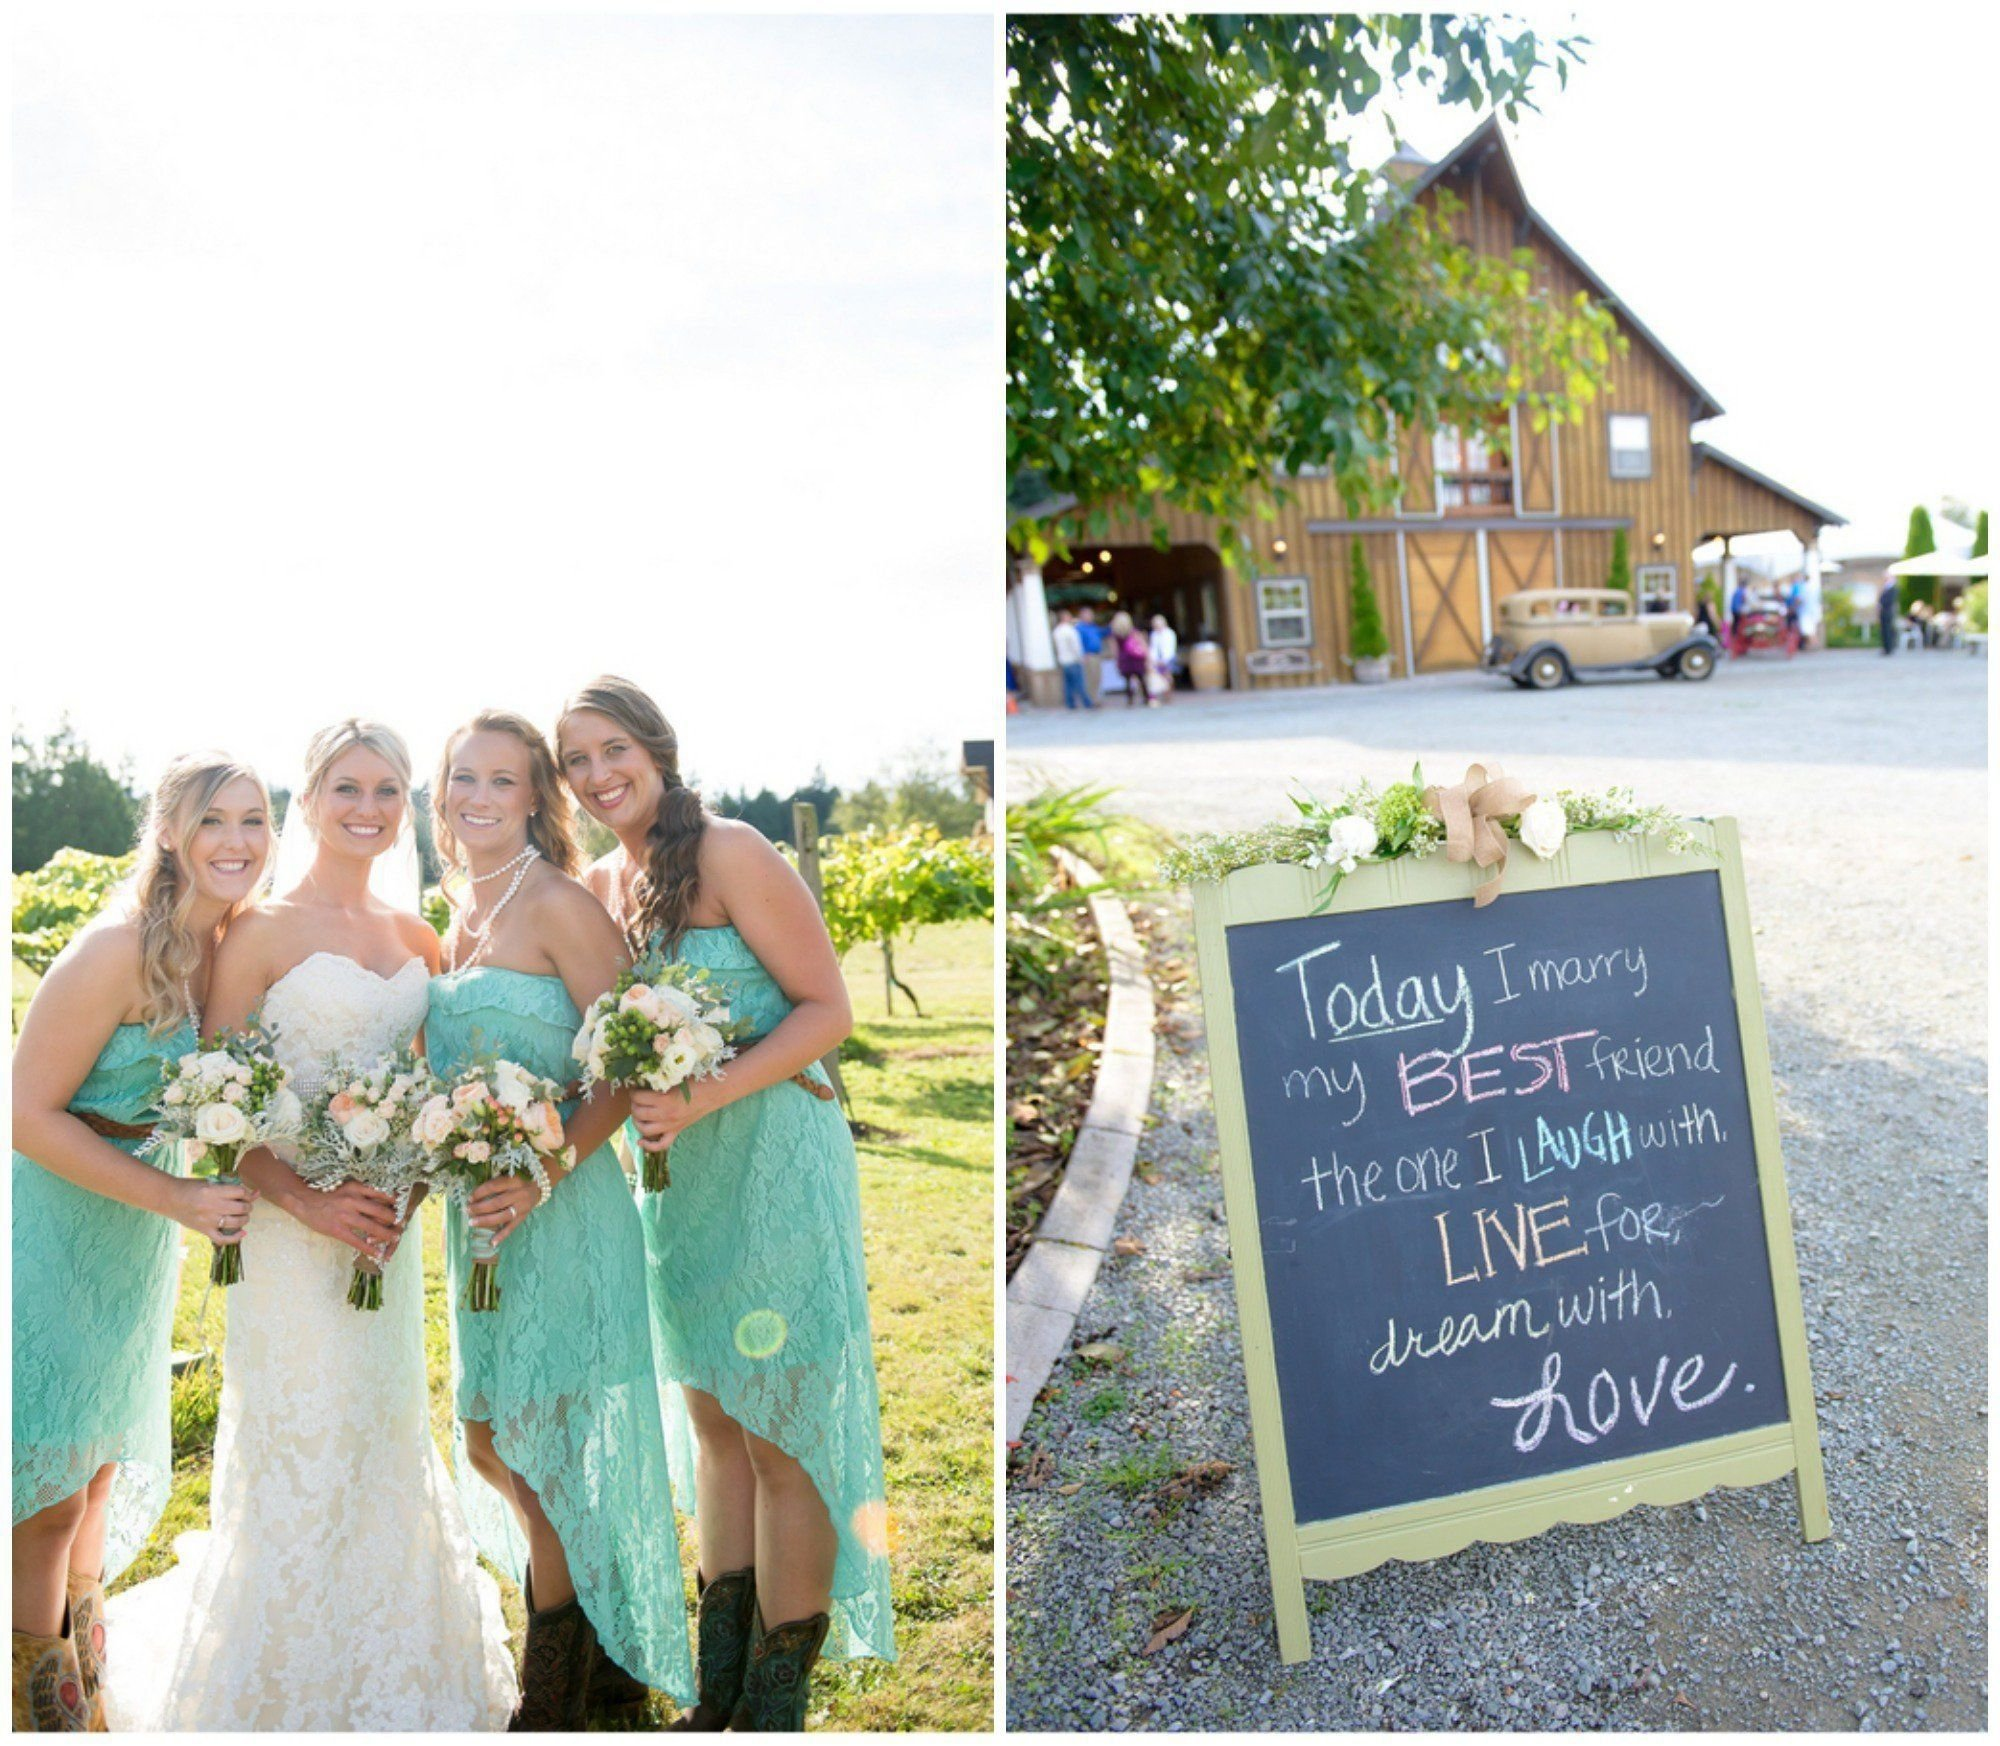 country wedding on a budget - rustic wedding chic